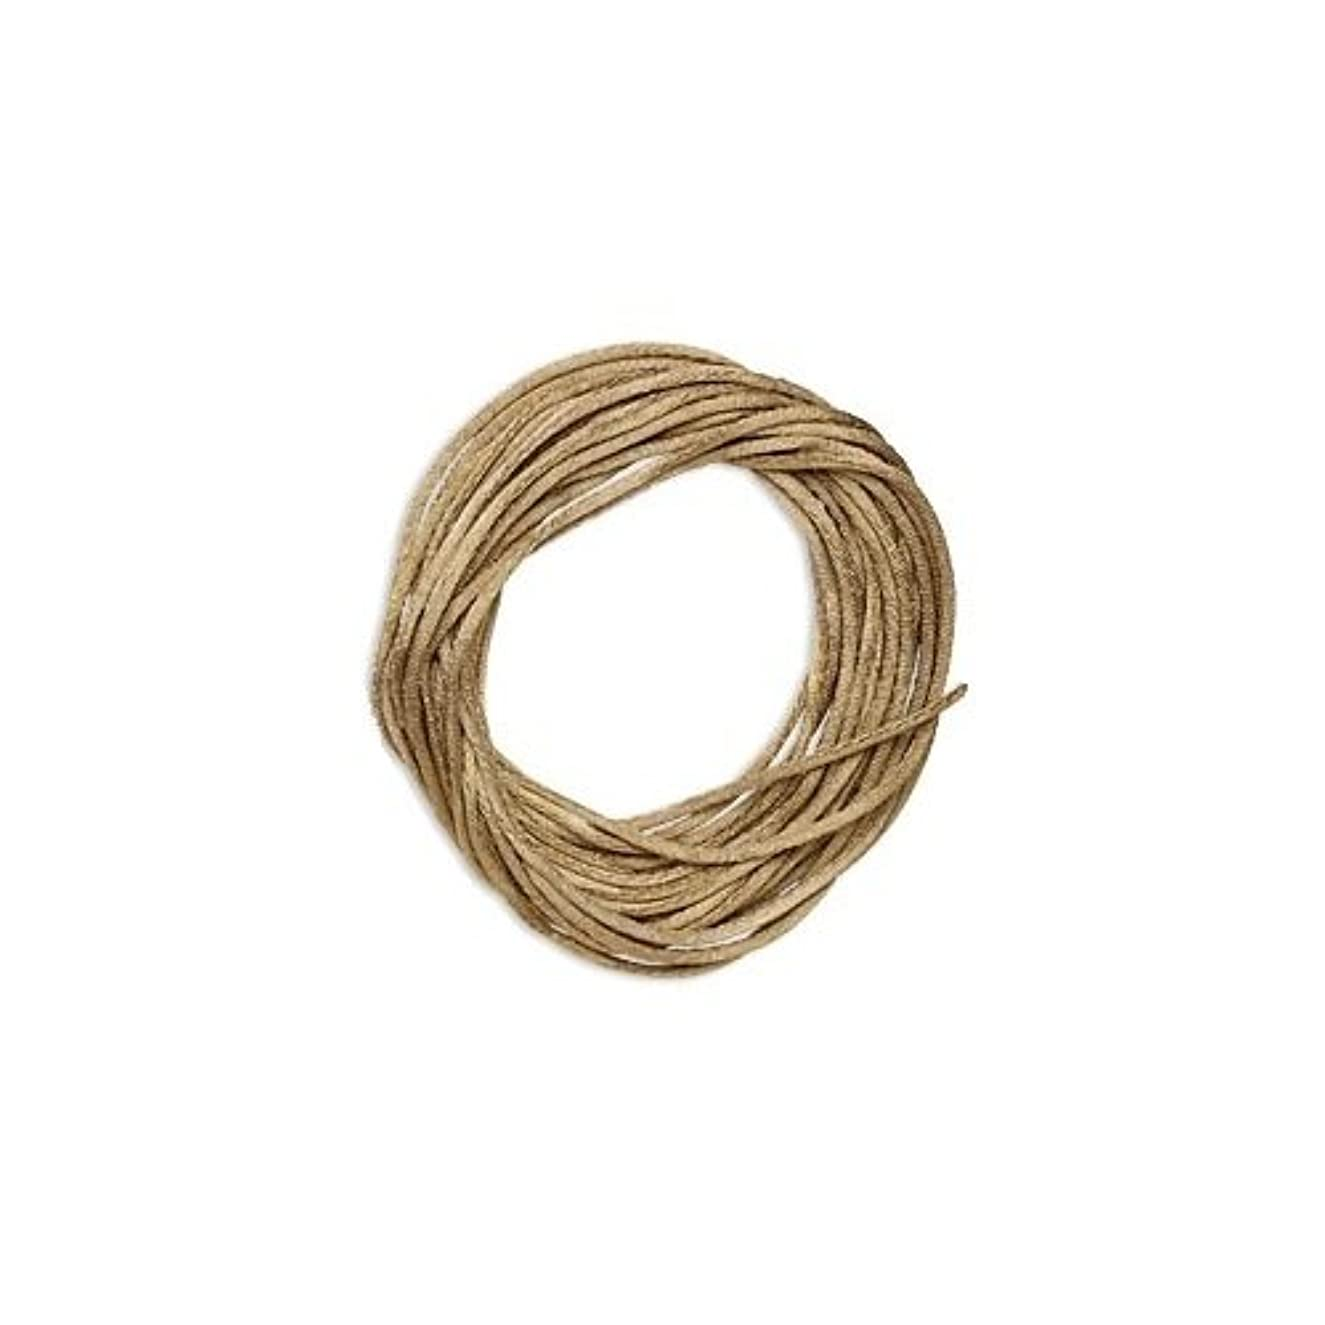 Satin Bugtail Cord Light Brown 1mm. Section of 5 meters / 5.4 Yards.